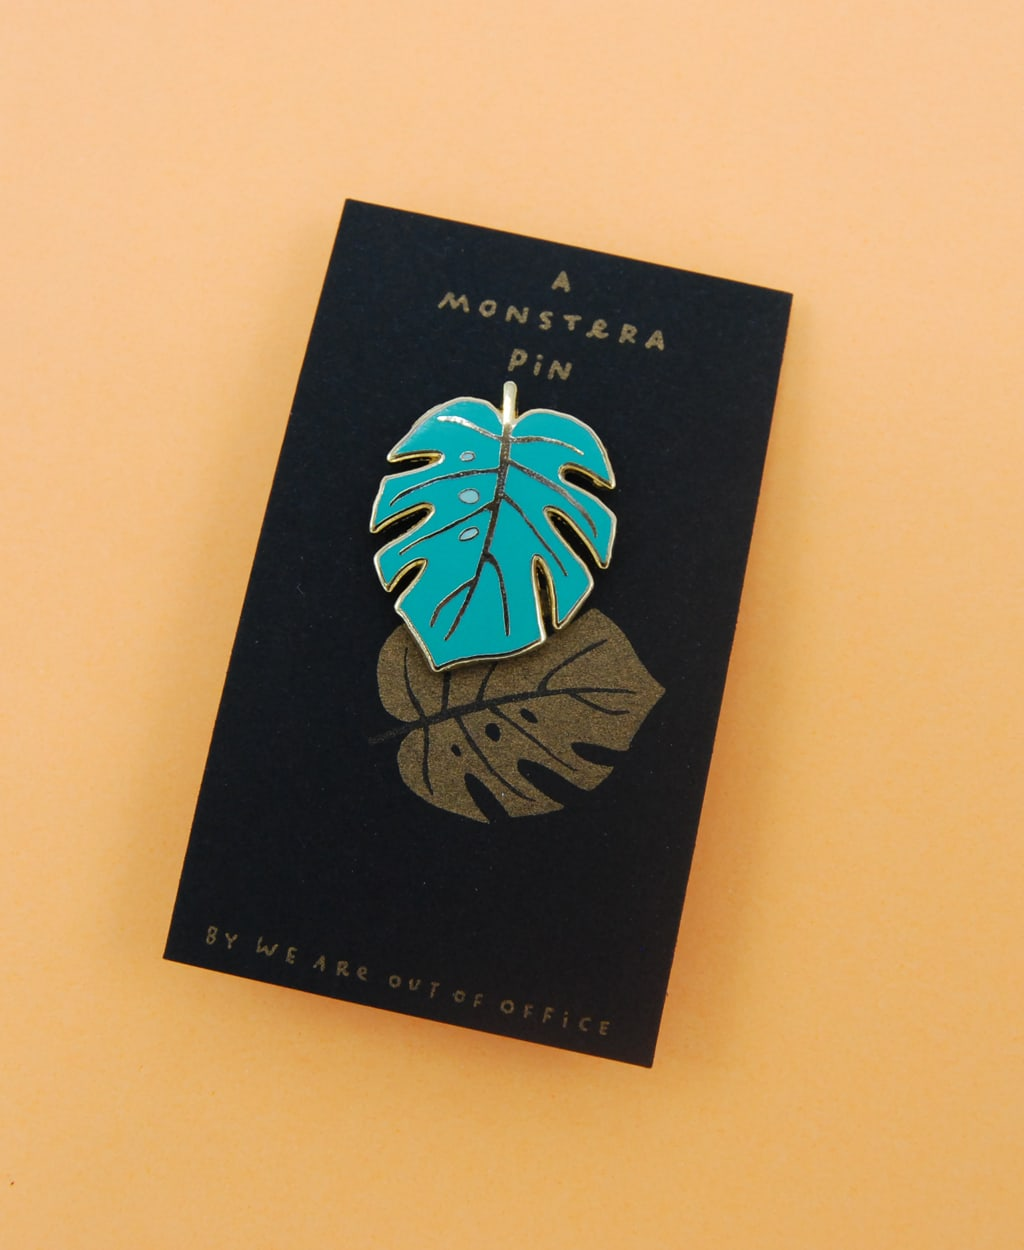 We are out of office  Monstera Pin